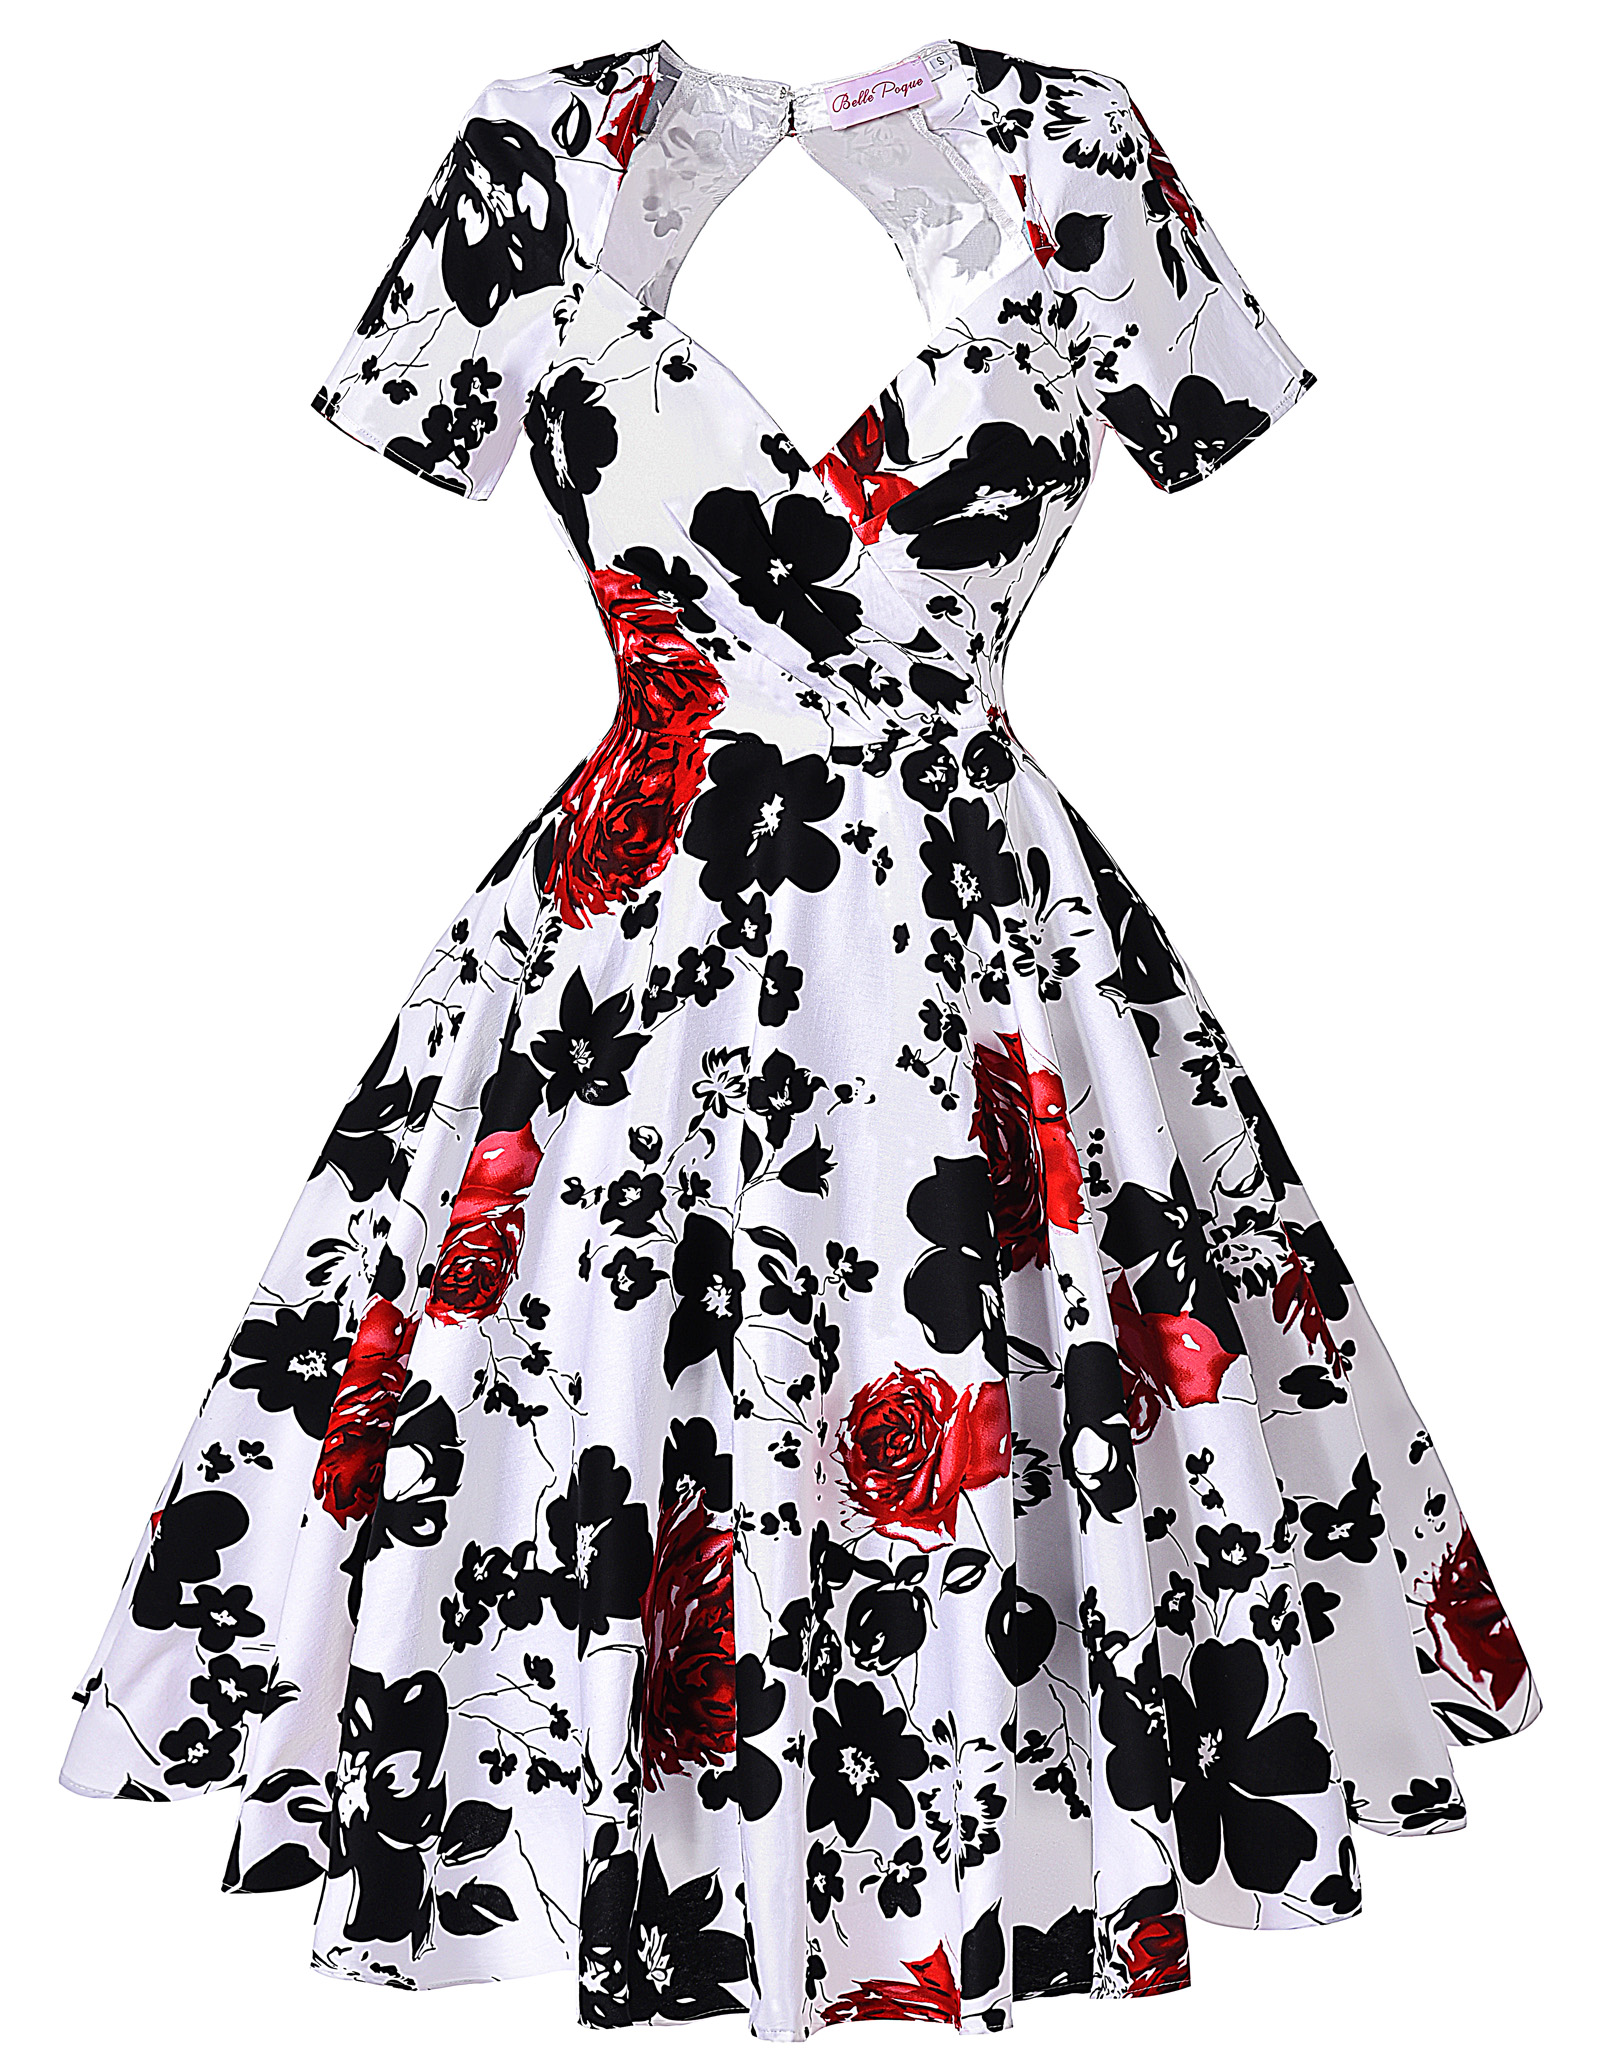 Vintage 50s 60s Short Sleeve Evening Cotton Party Picnic Swing Short Dress Gown